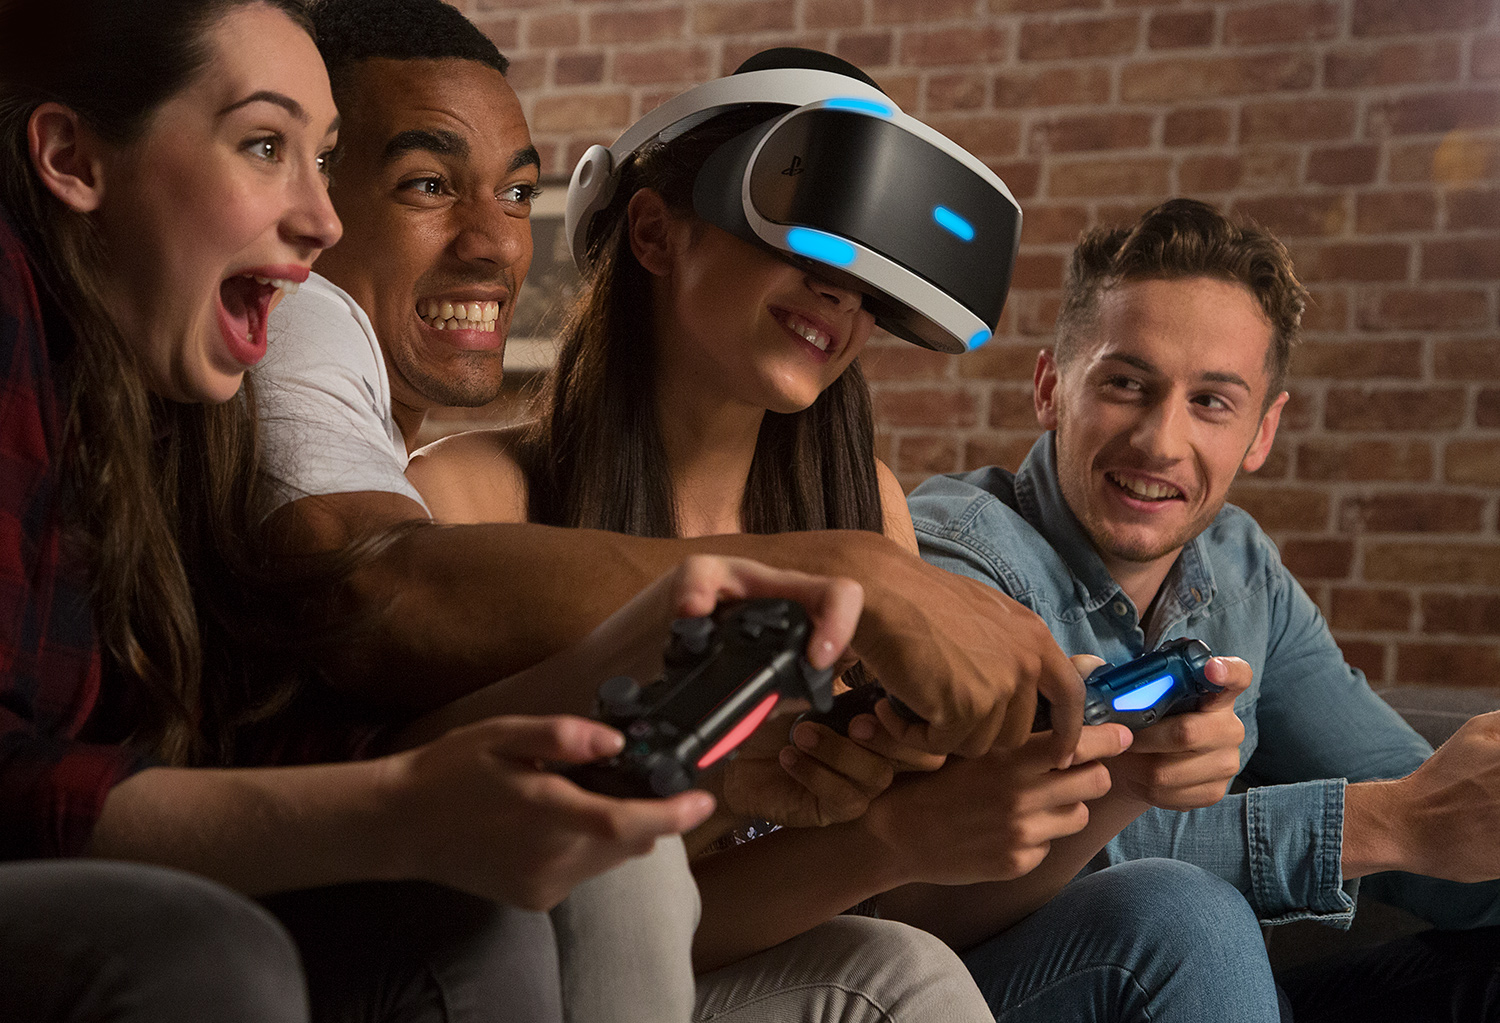 image showing many people playing with Playstation VR